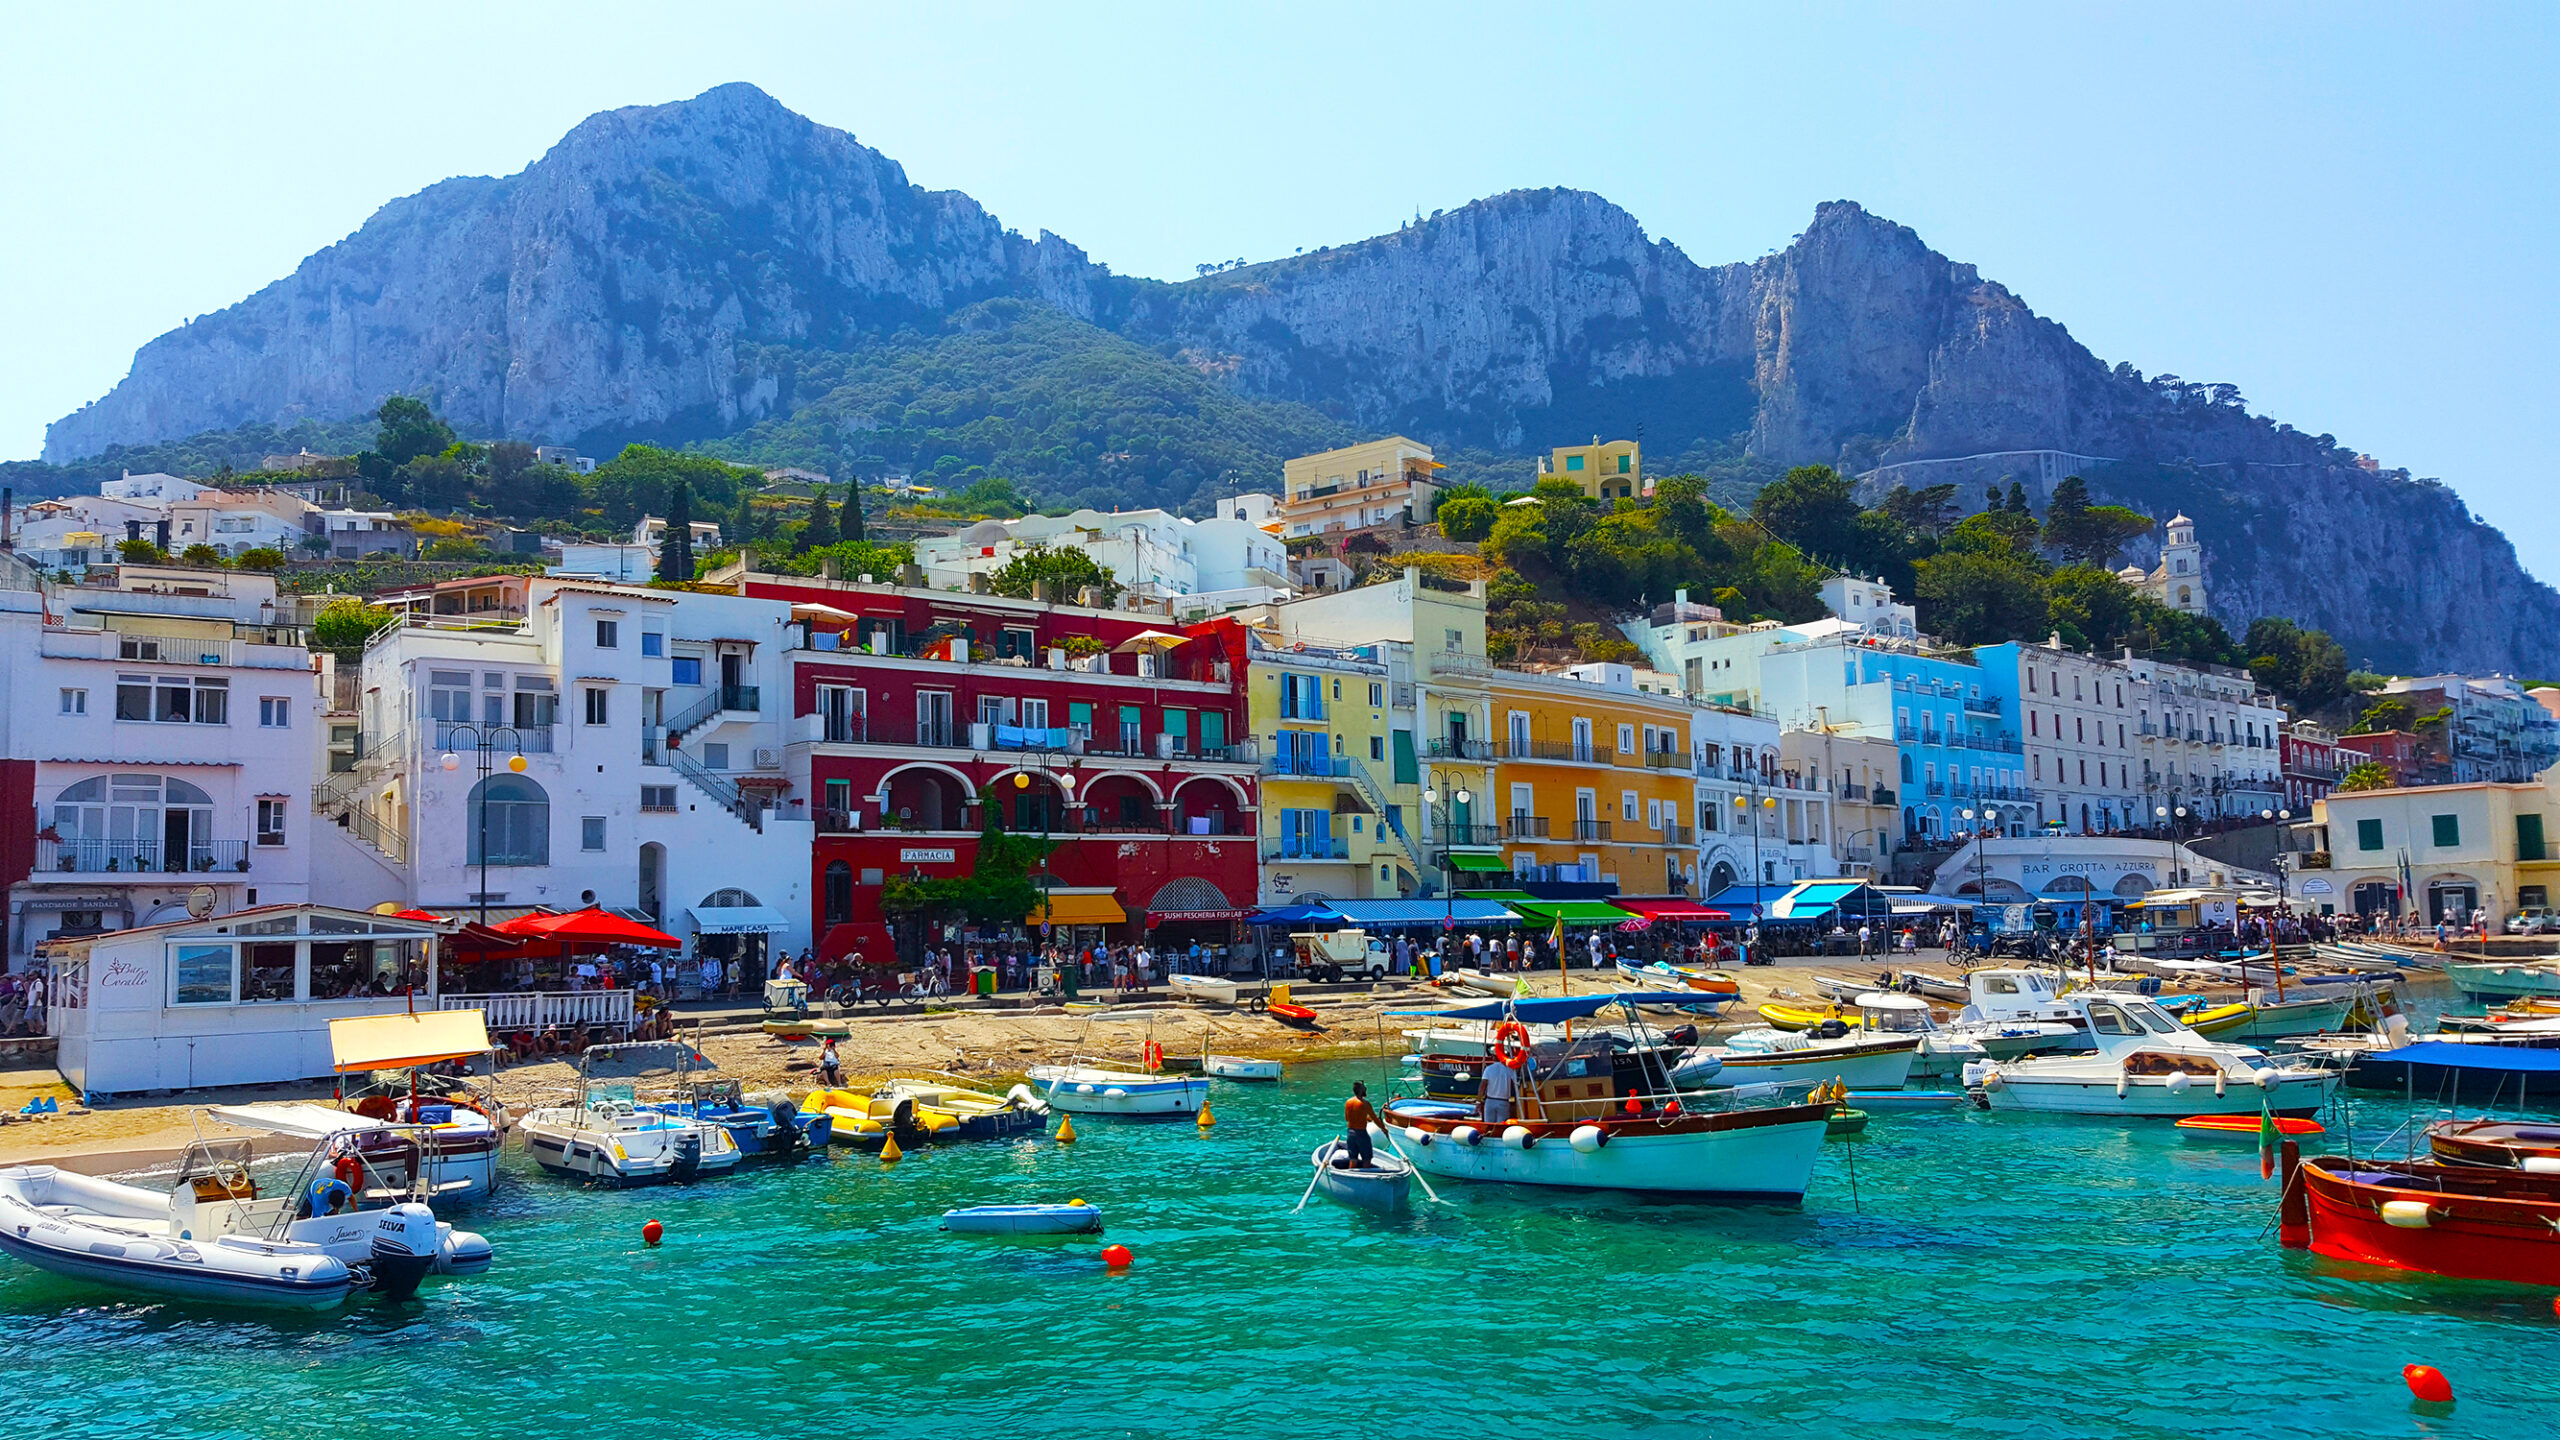 Photo of Marina Grande of Amalfi showing fishing boats and colorful buildings.